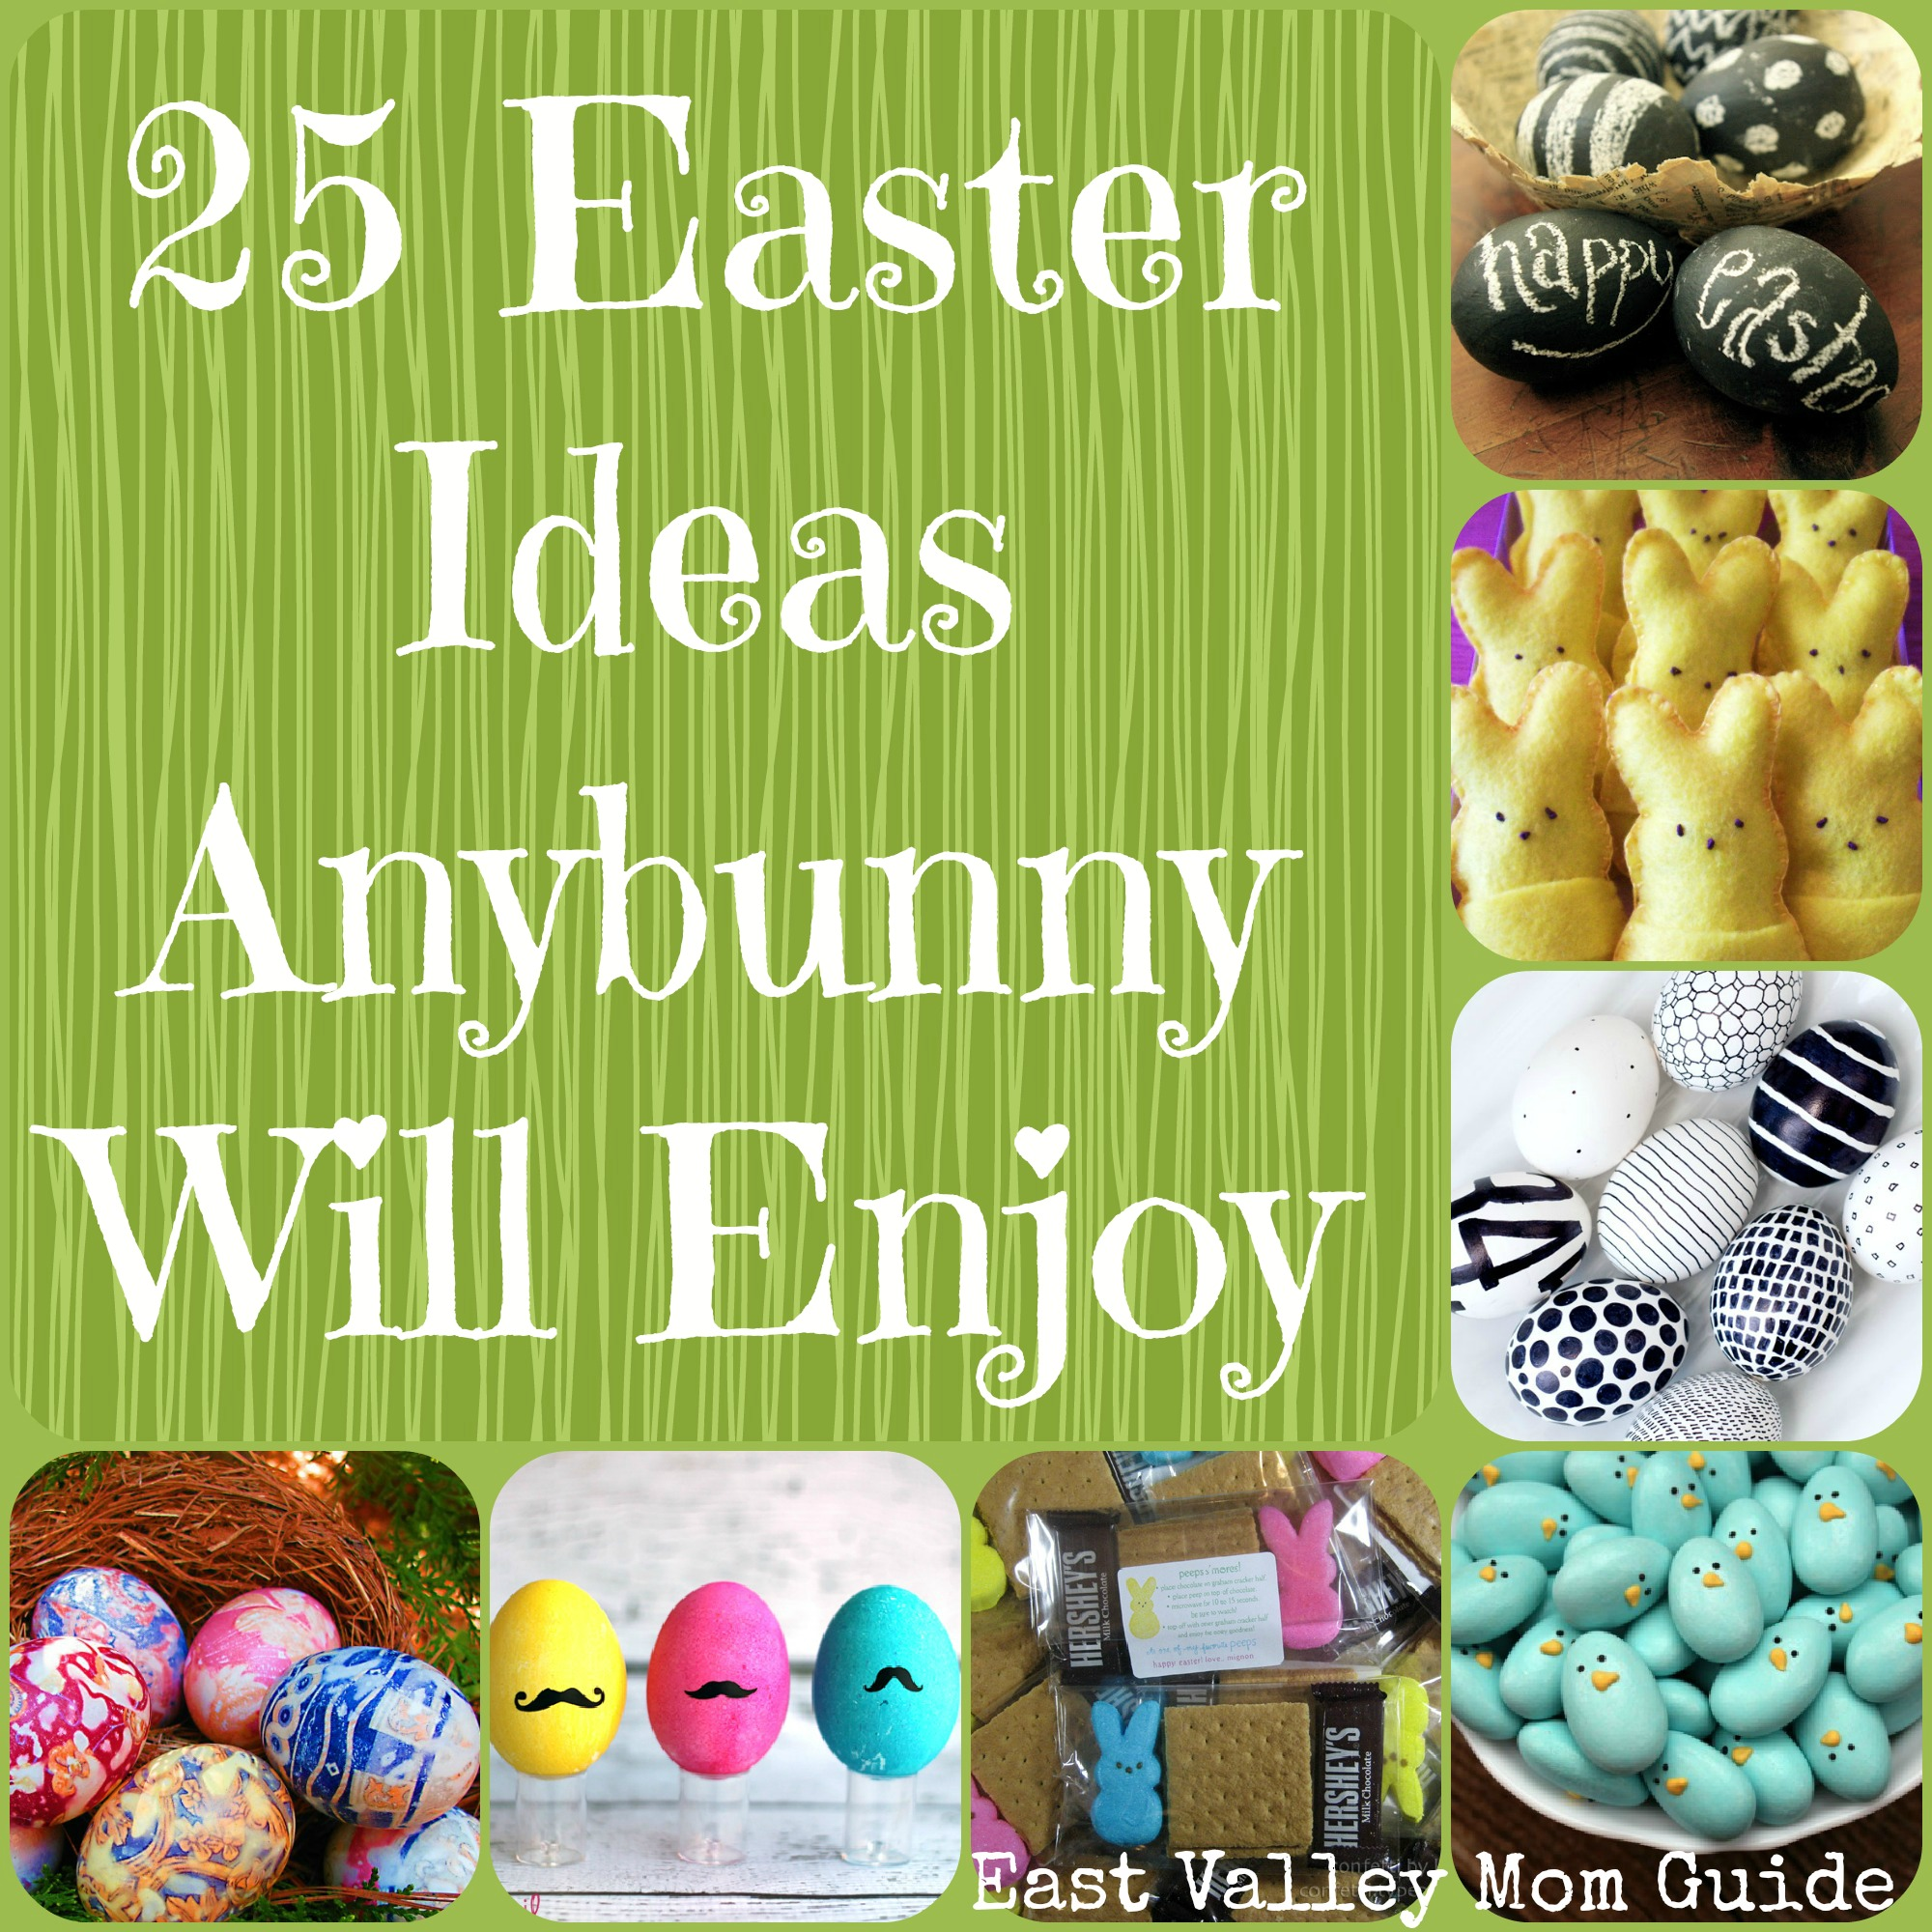 25 easter ideas anybunny will enjoy east valley mom guide negle Choice Image